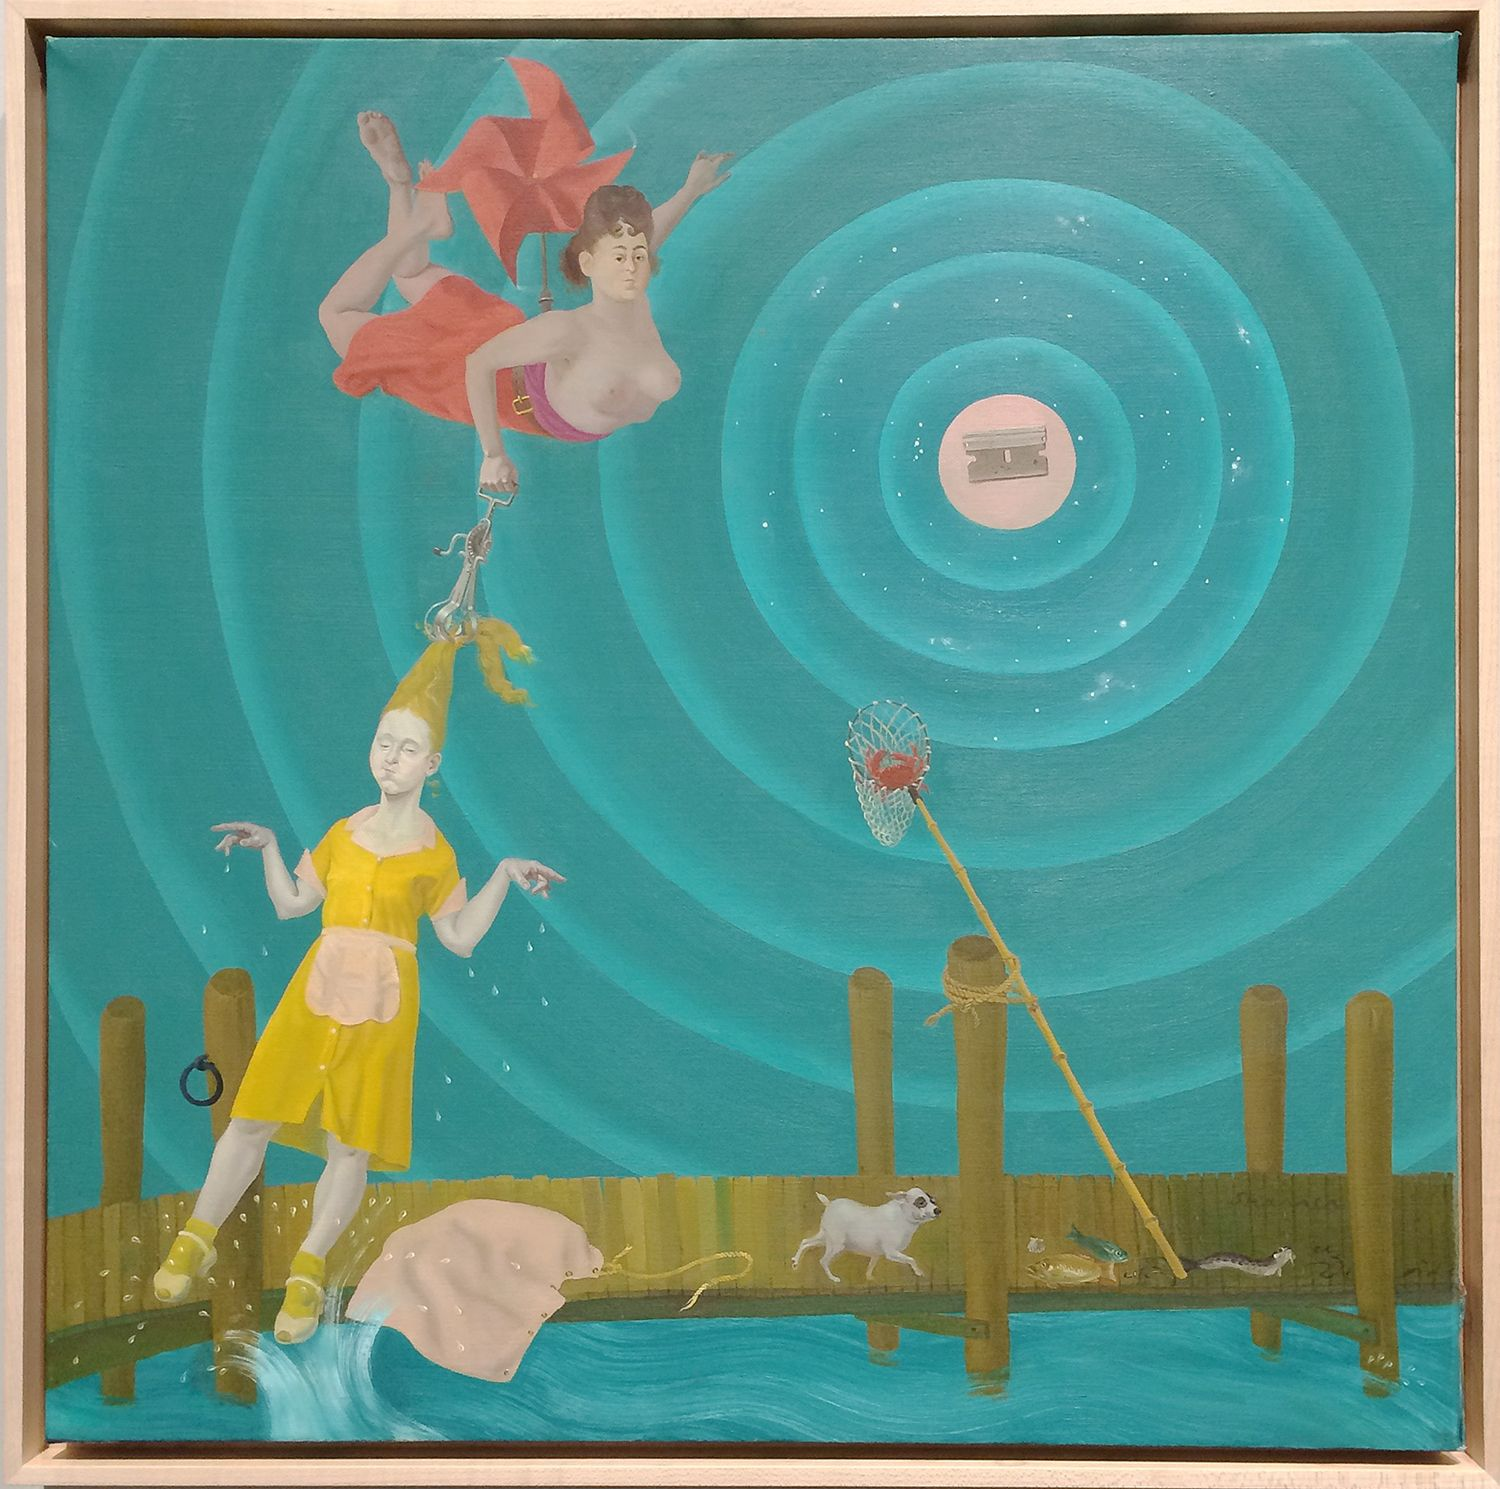 Honoré Sharrer (1920-2009), Resurrection of the Waitress, 1984